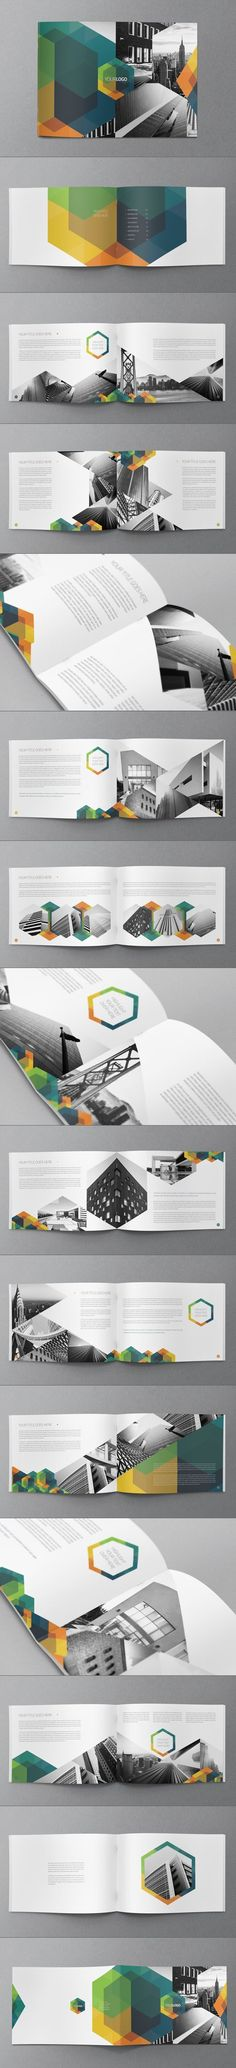 Hexo Brochure Design by Abra Design | Graphic Design — Designspiration